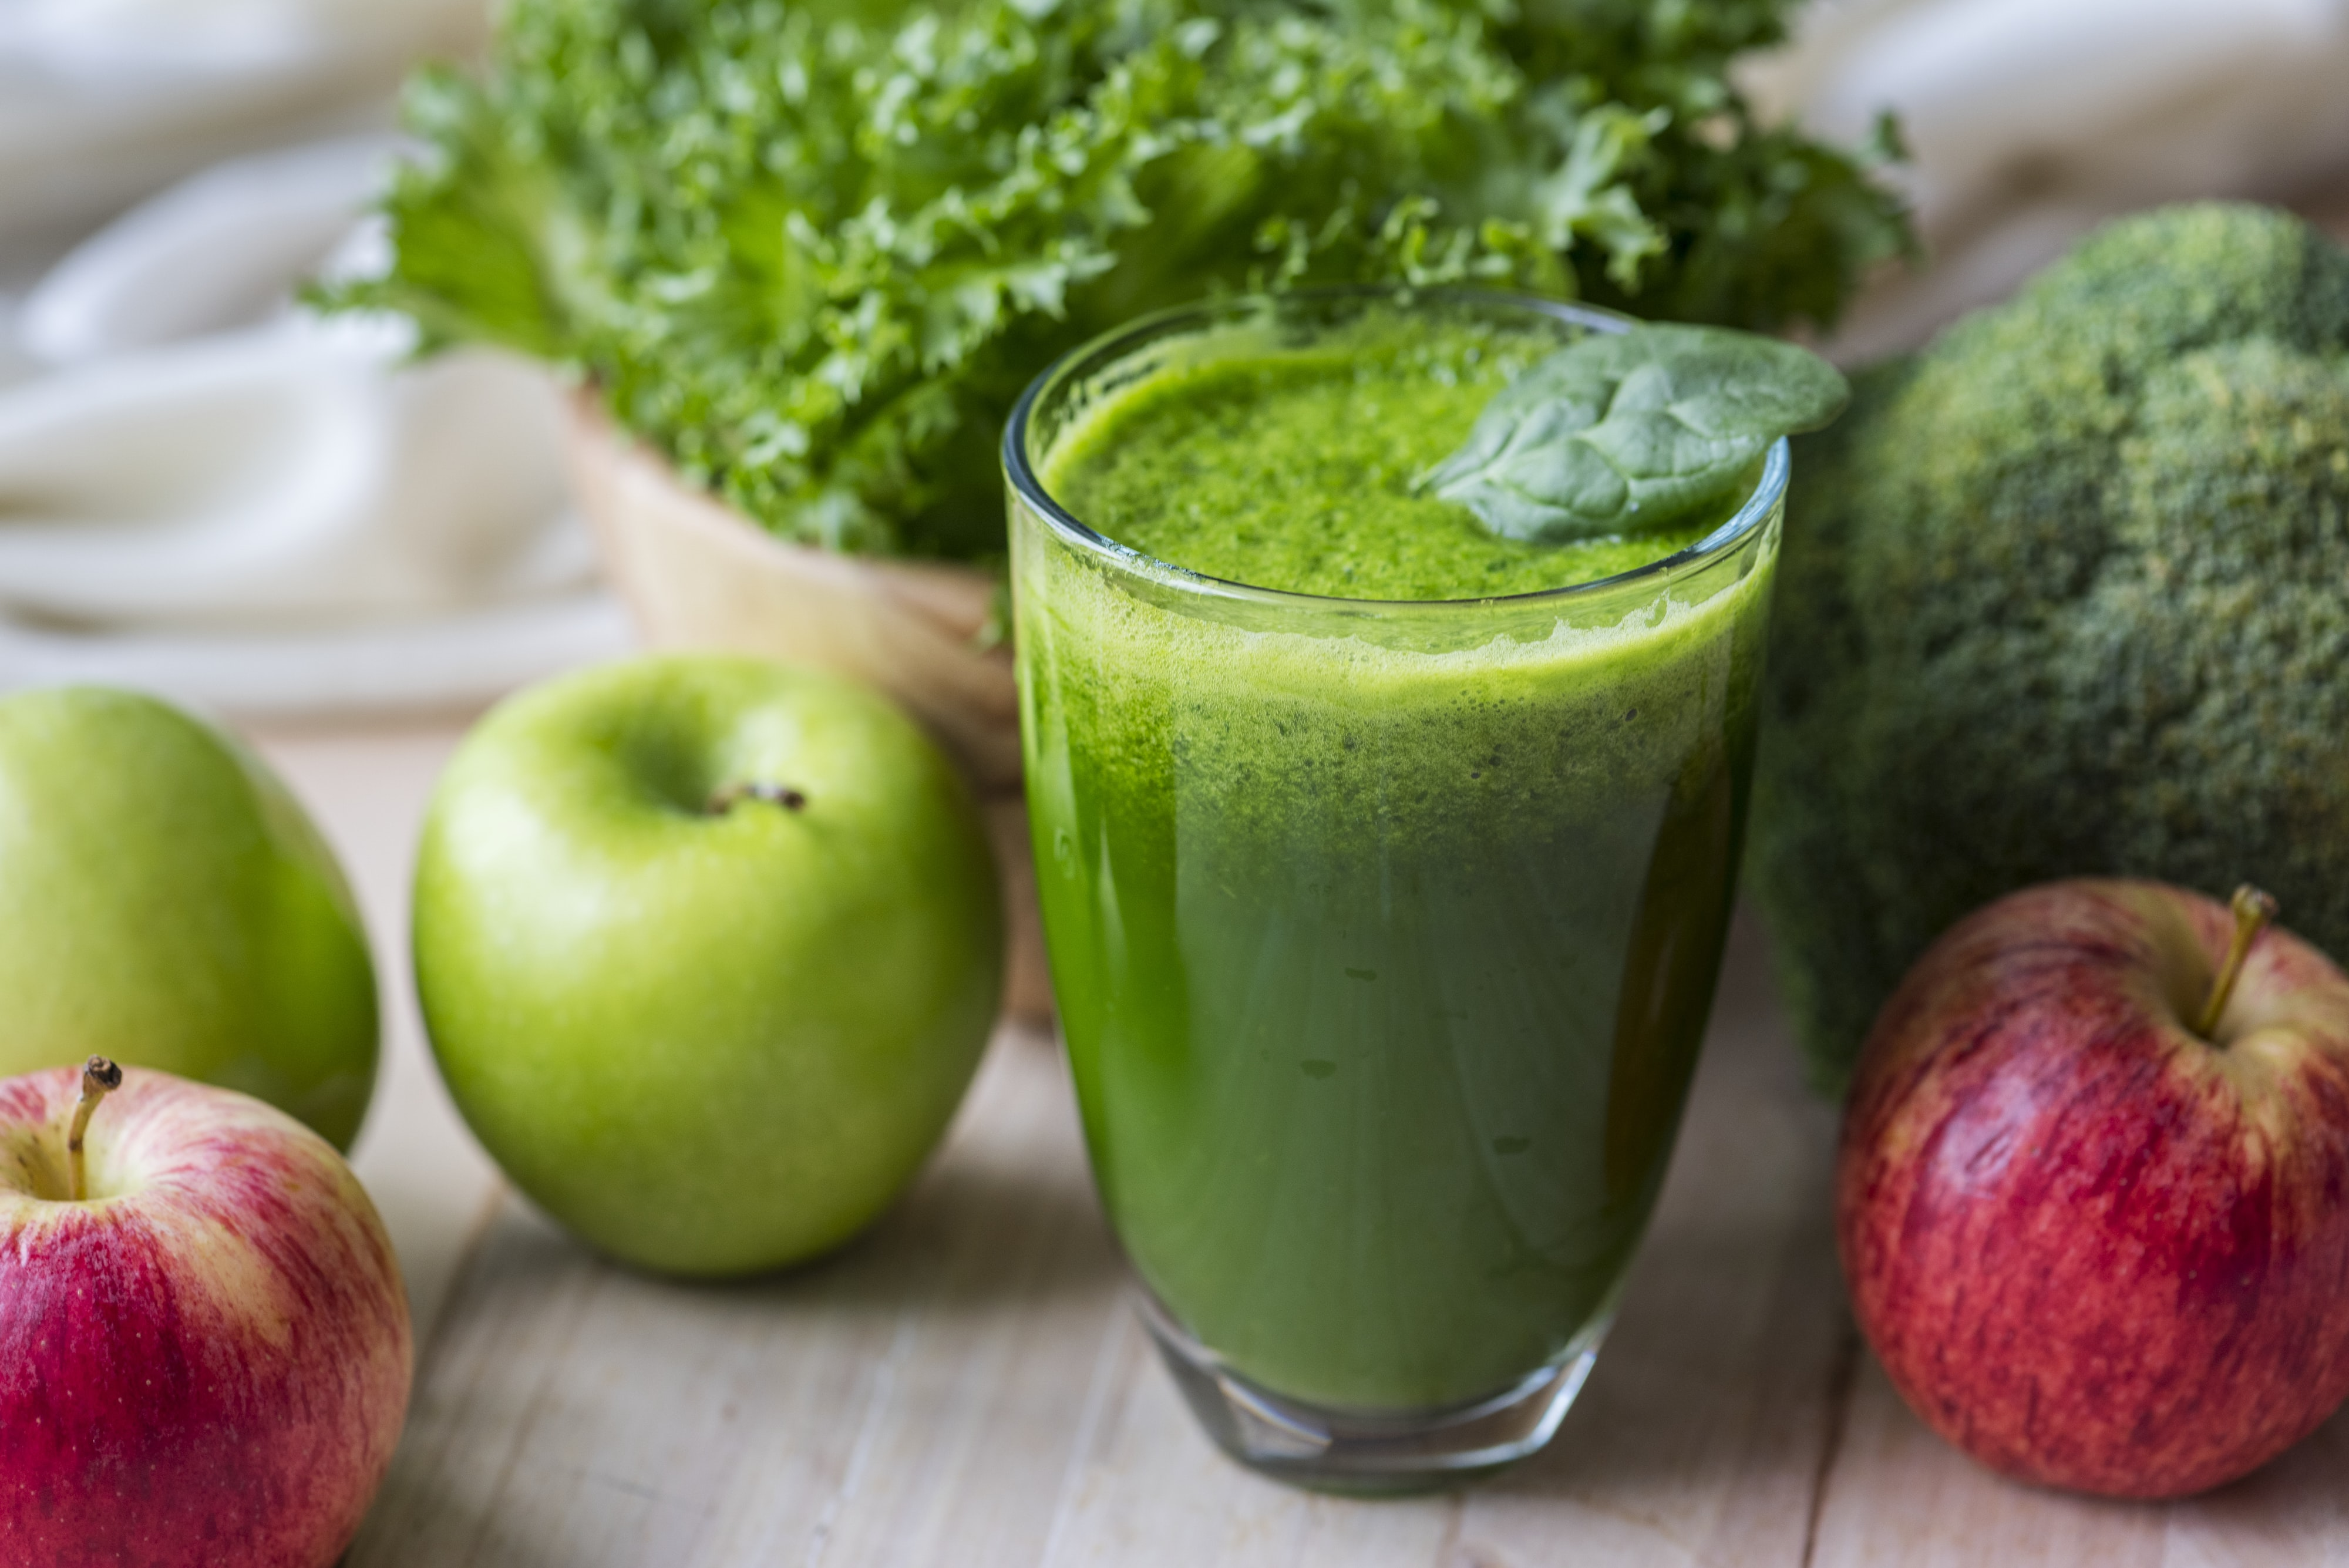 green apple juice in glass cup beside red and green apples